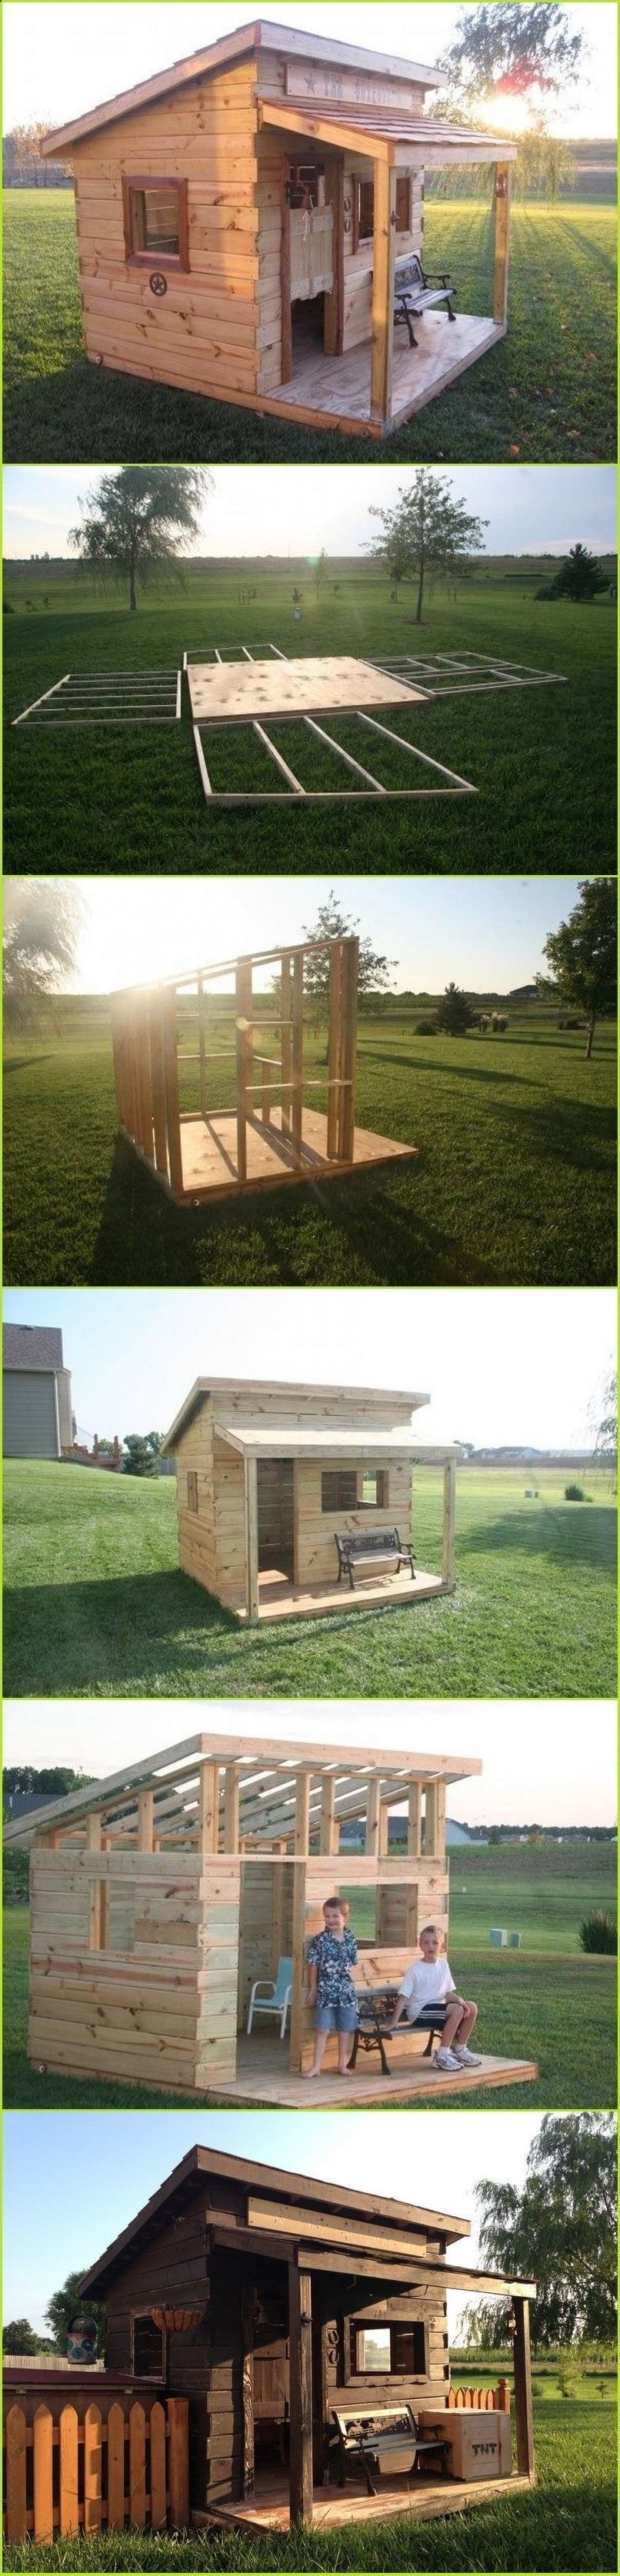 Plans Of Woodworking Diy Projects  Shed Plans  Diy